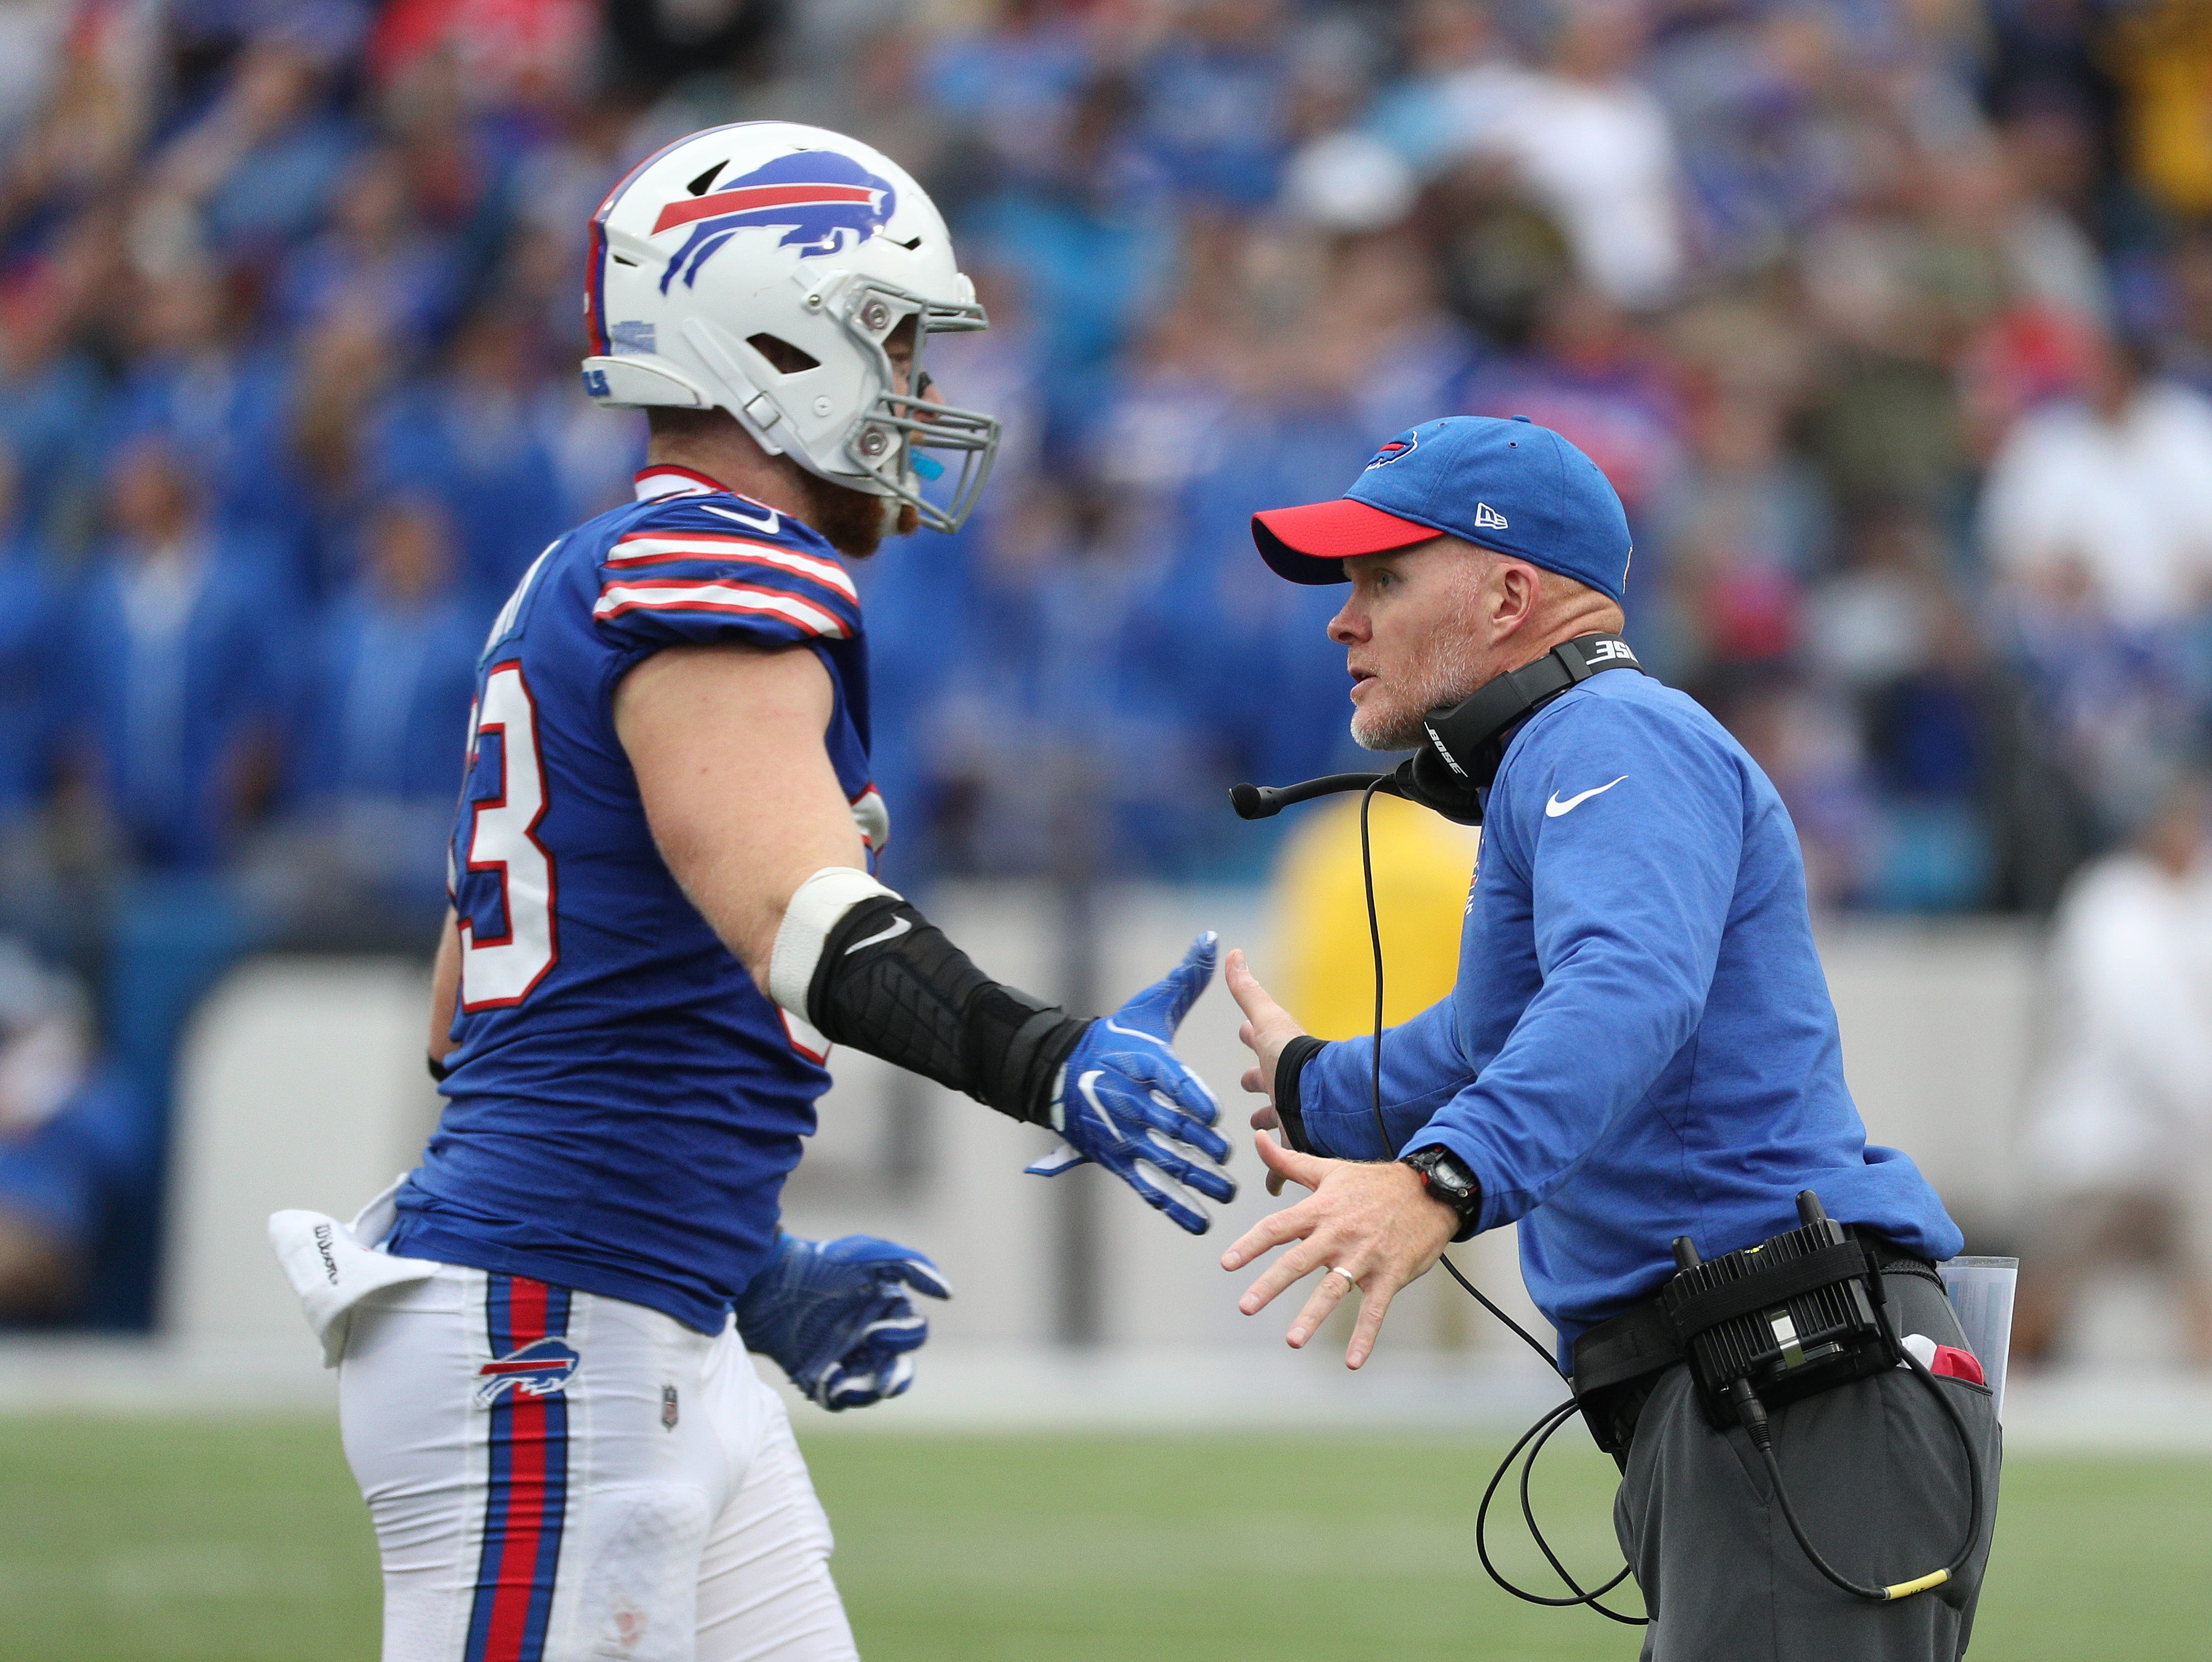 Bills head coach greets players as they come off the field after a defensive stop.